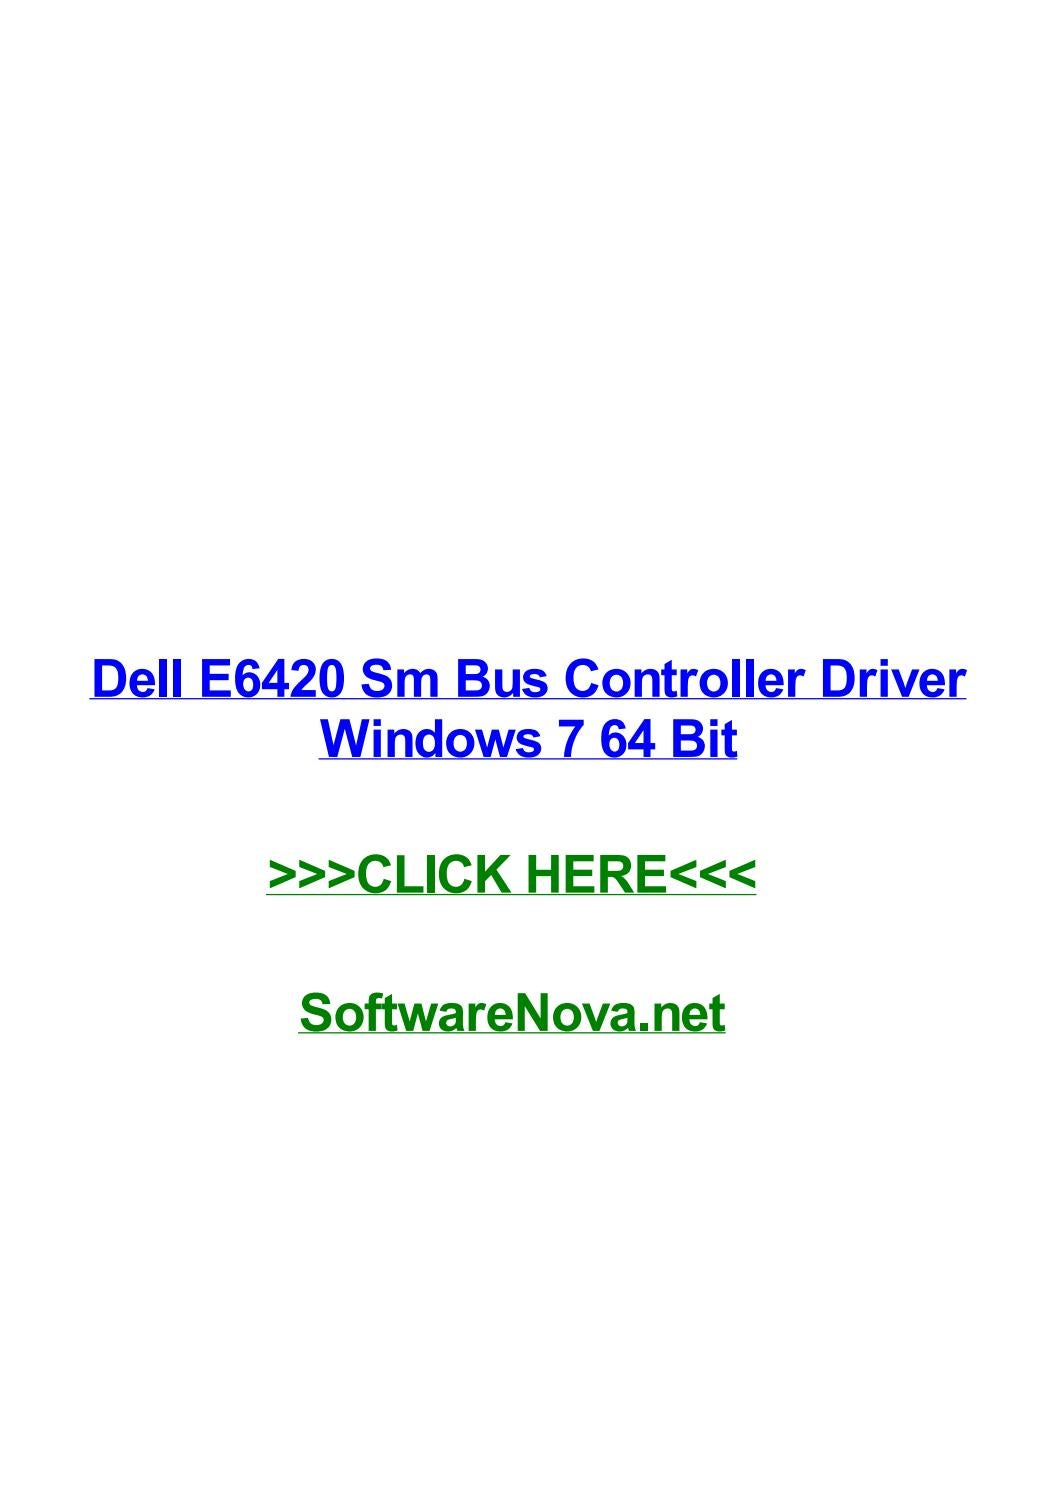 Mass storage controller driver windows 7 dell e6420